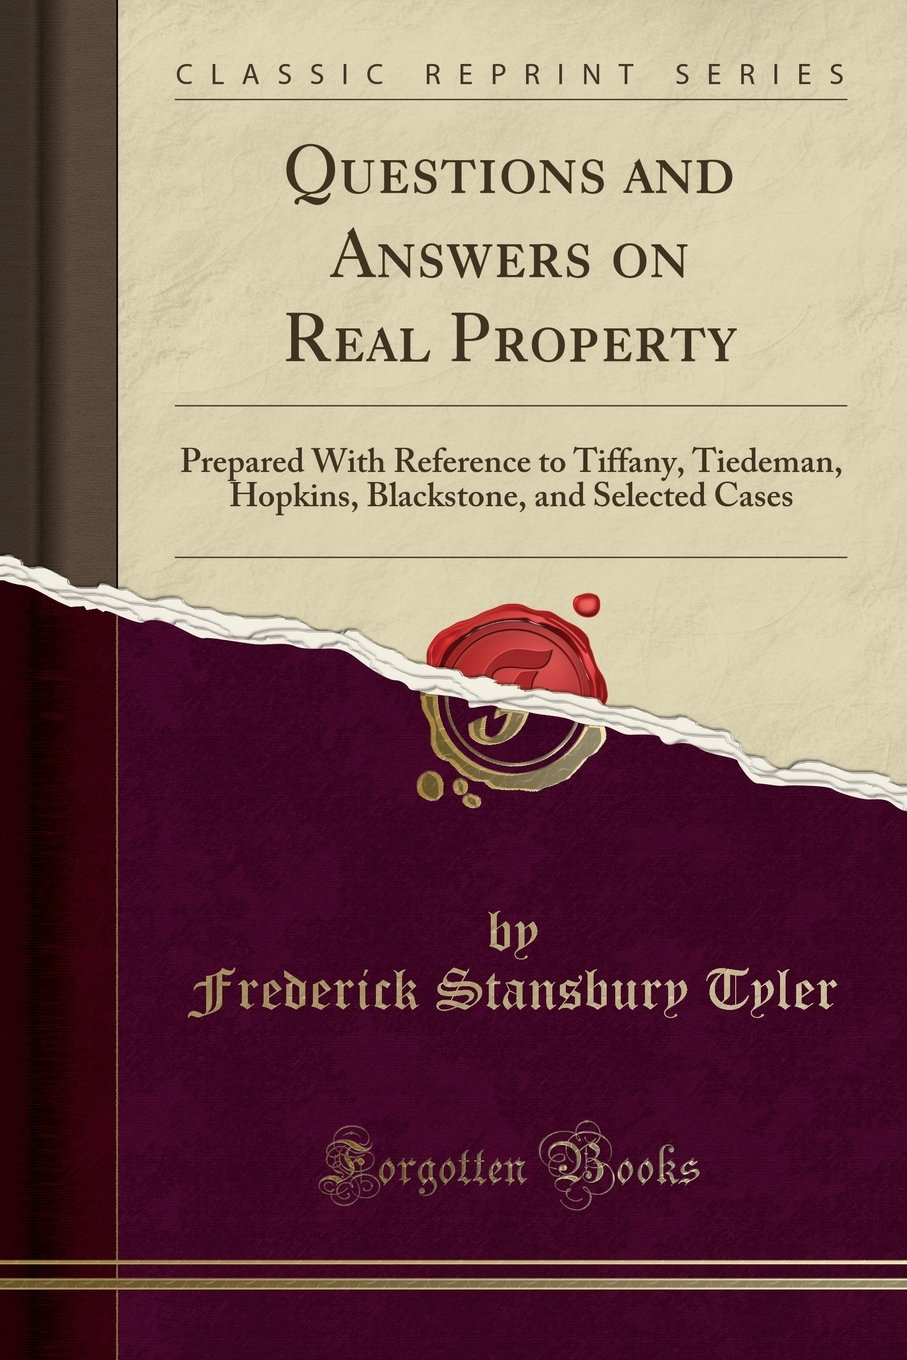 Download Questions and Answers on Real Property: Prepared With Reference to Tiffany, Tiedeman, Hopkins, Blackstone, and Selected Cases (Classic Reprint) ebook